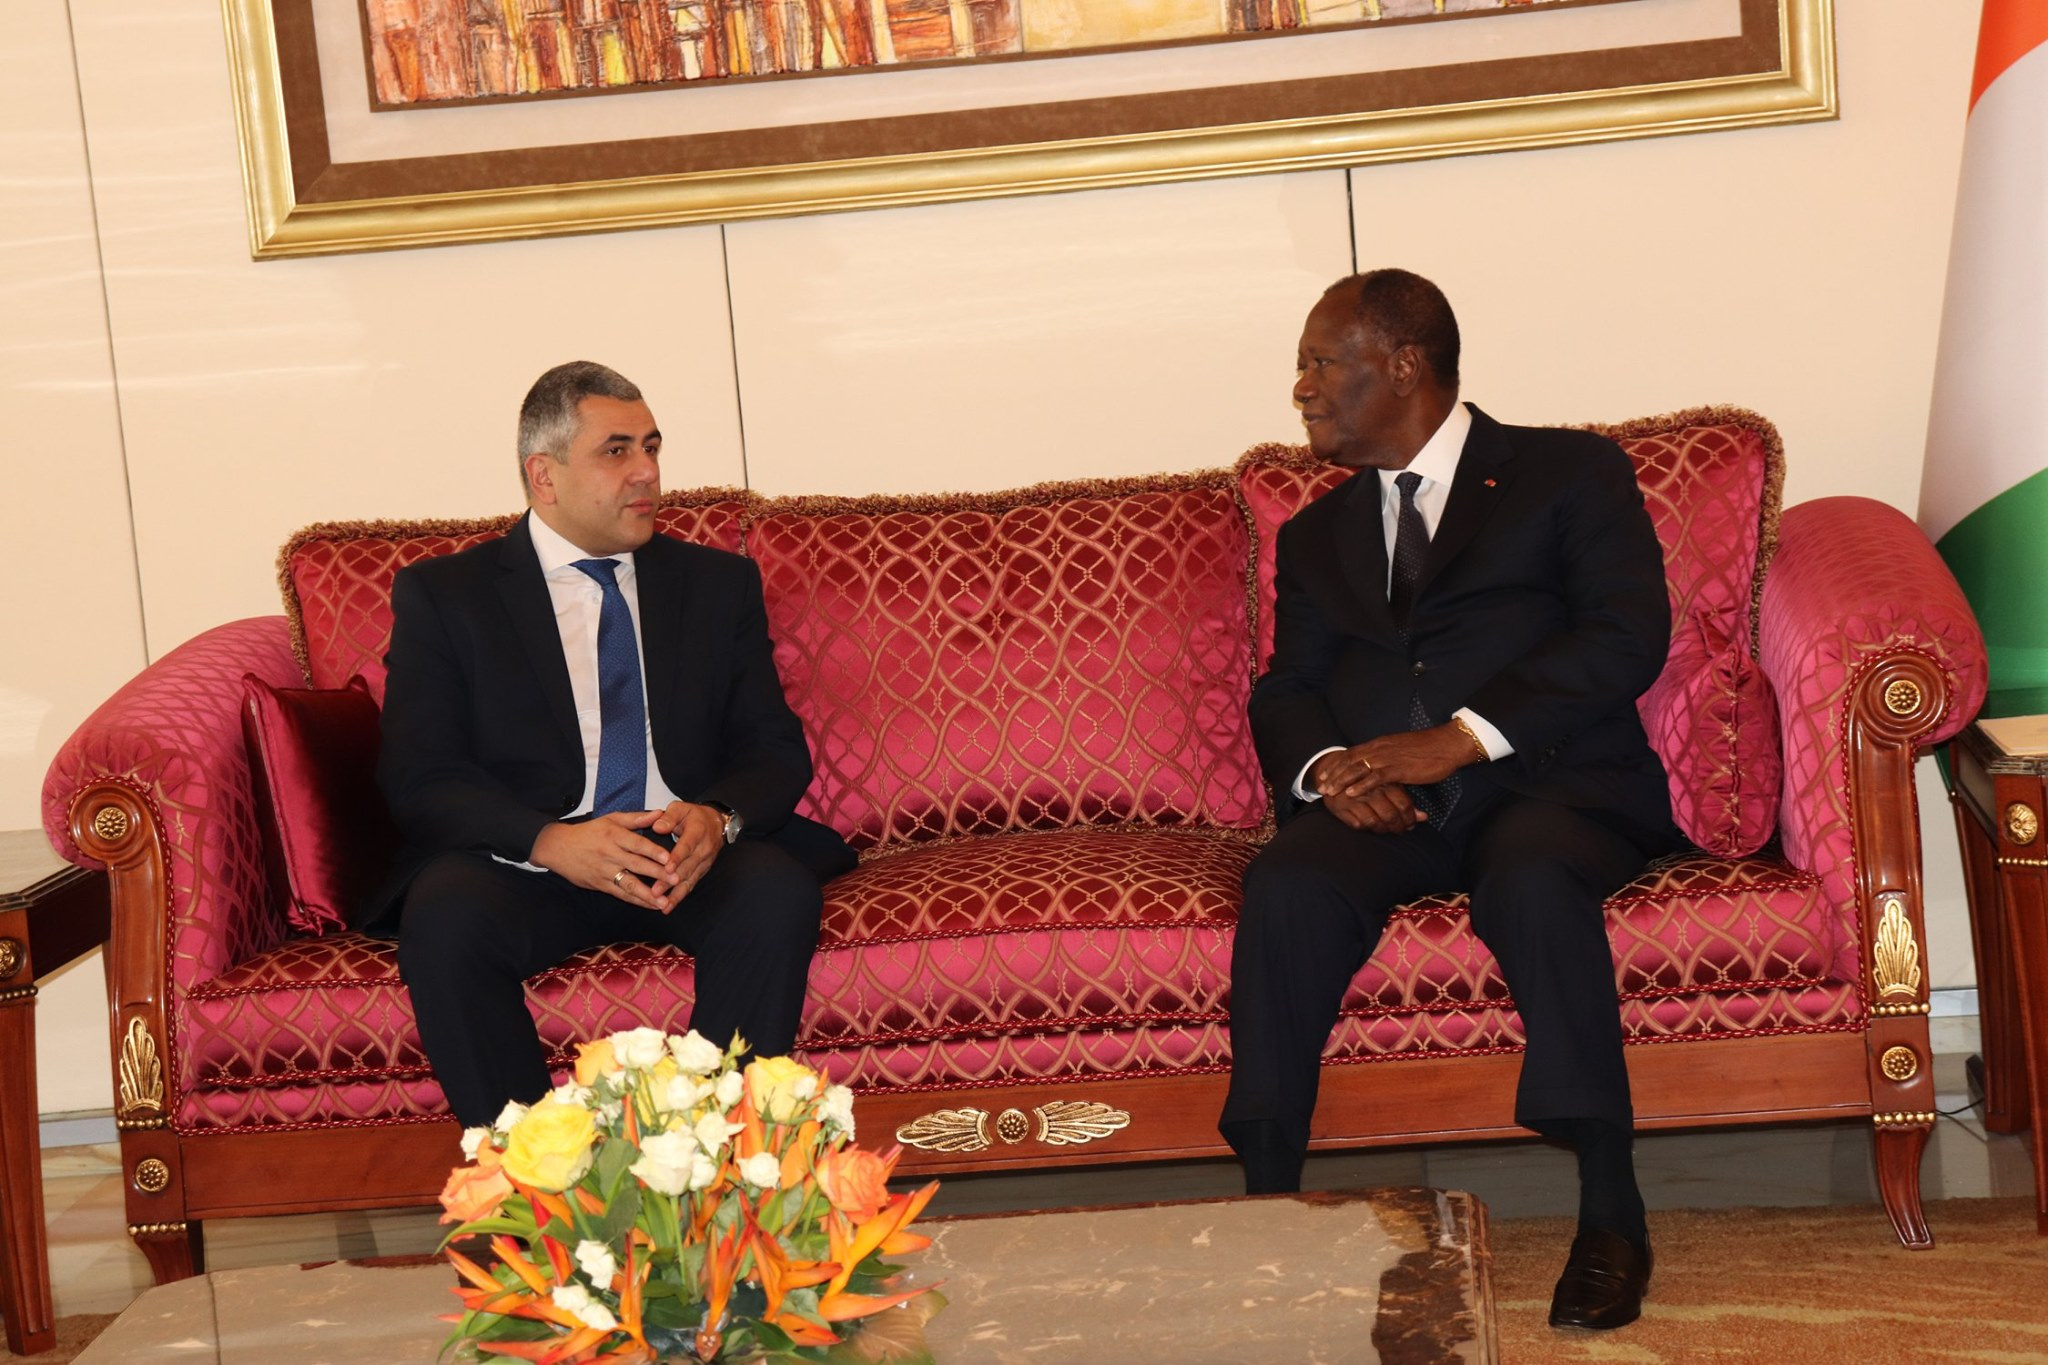 Côte d'Ivoire President prioritizes country's Tourism sector